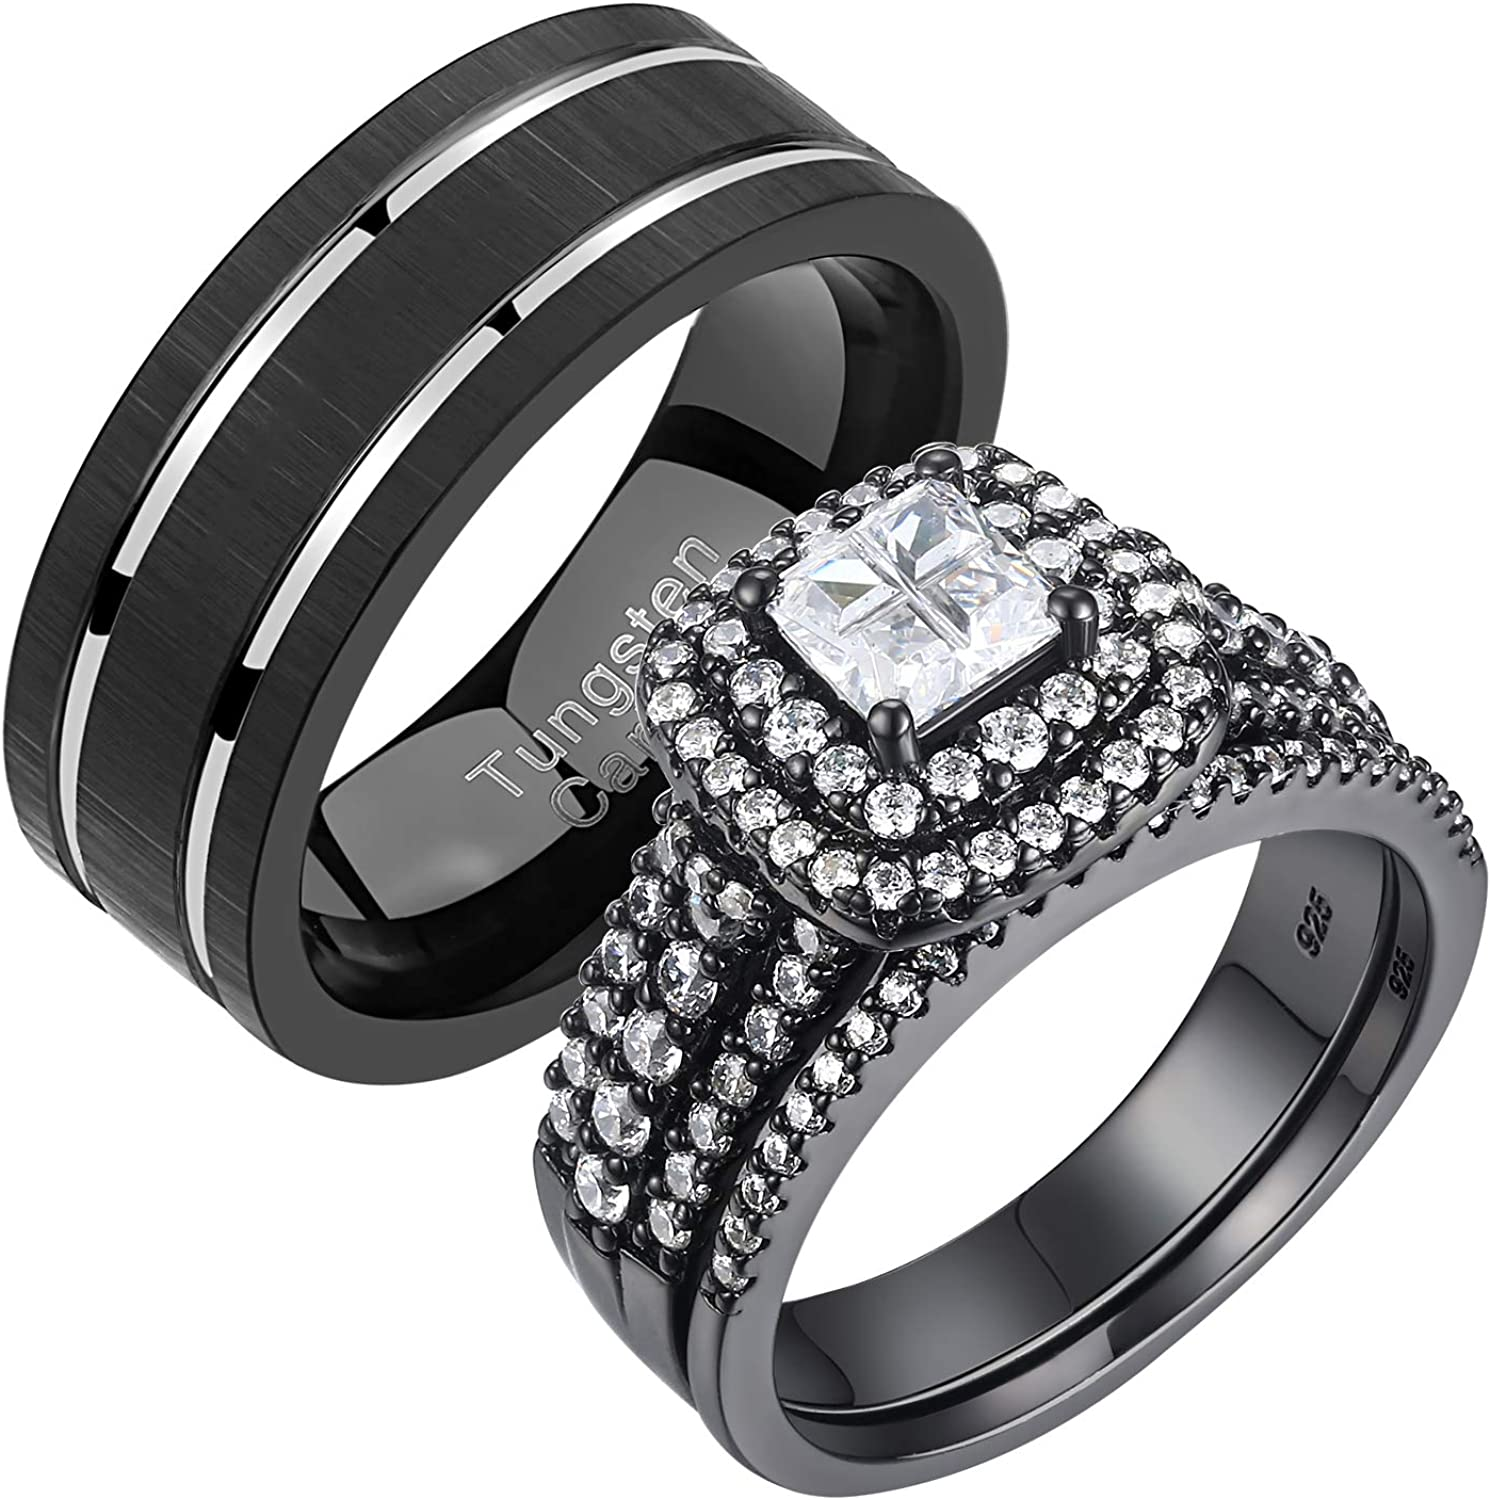 Newshe Wedding Rings OFFicial store Set for Him Her Ban OFFicial mail order Mens and Tungsten Women